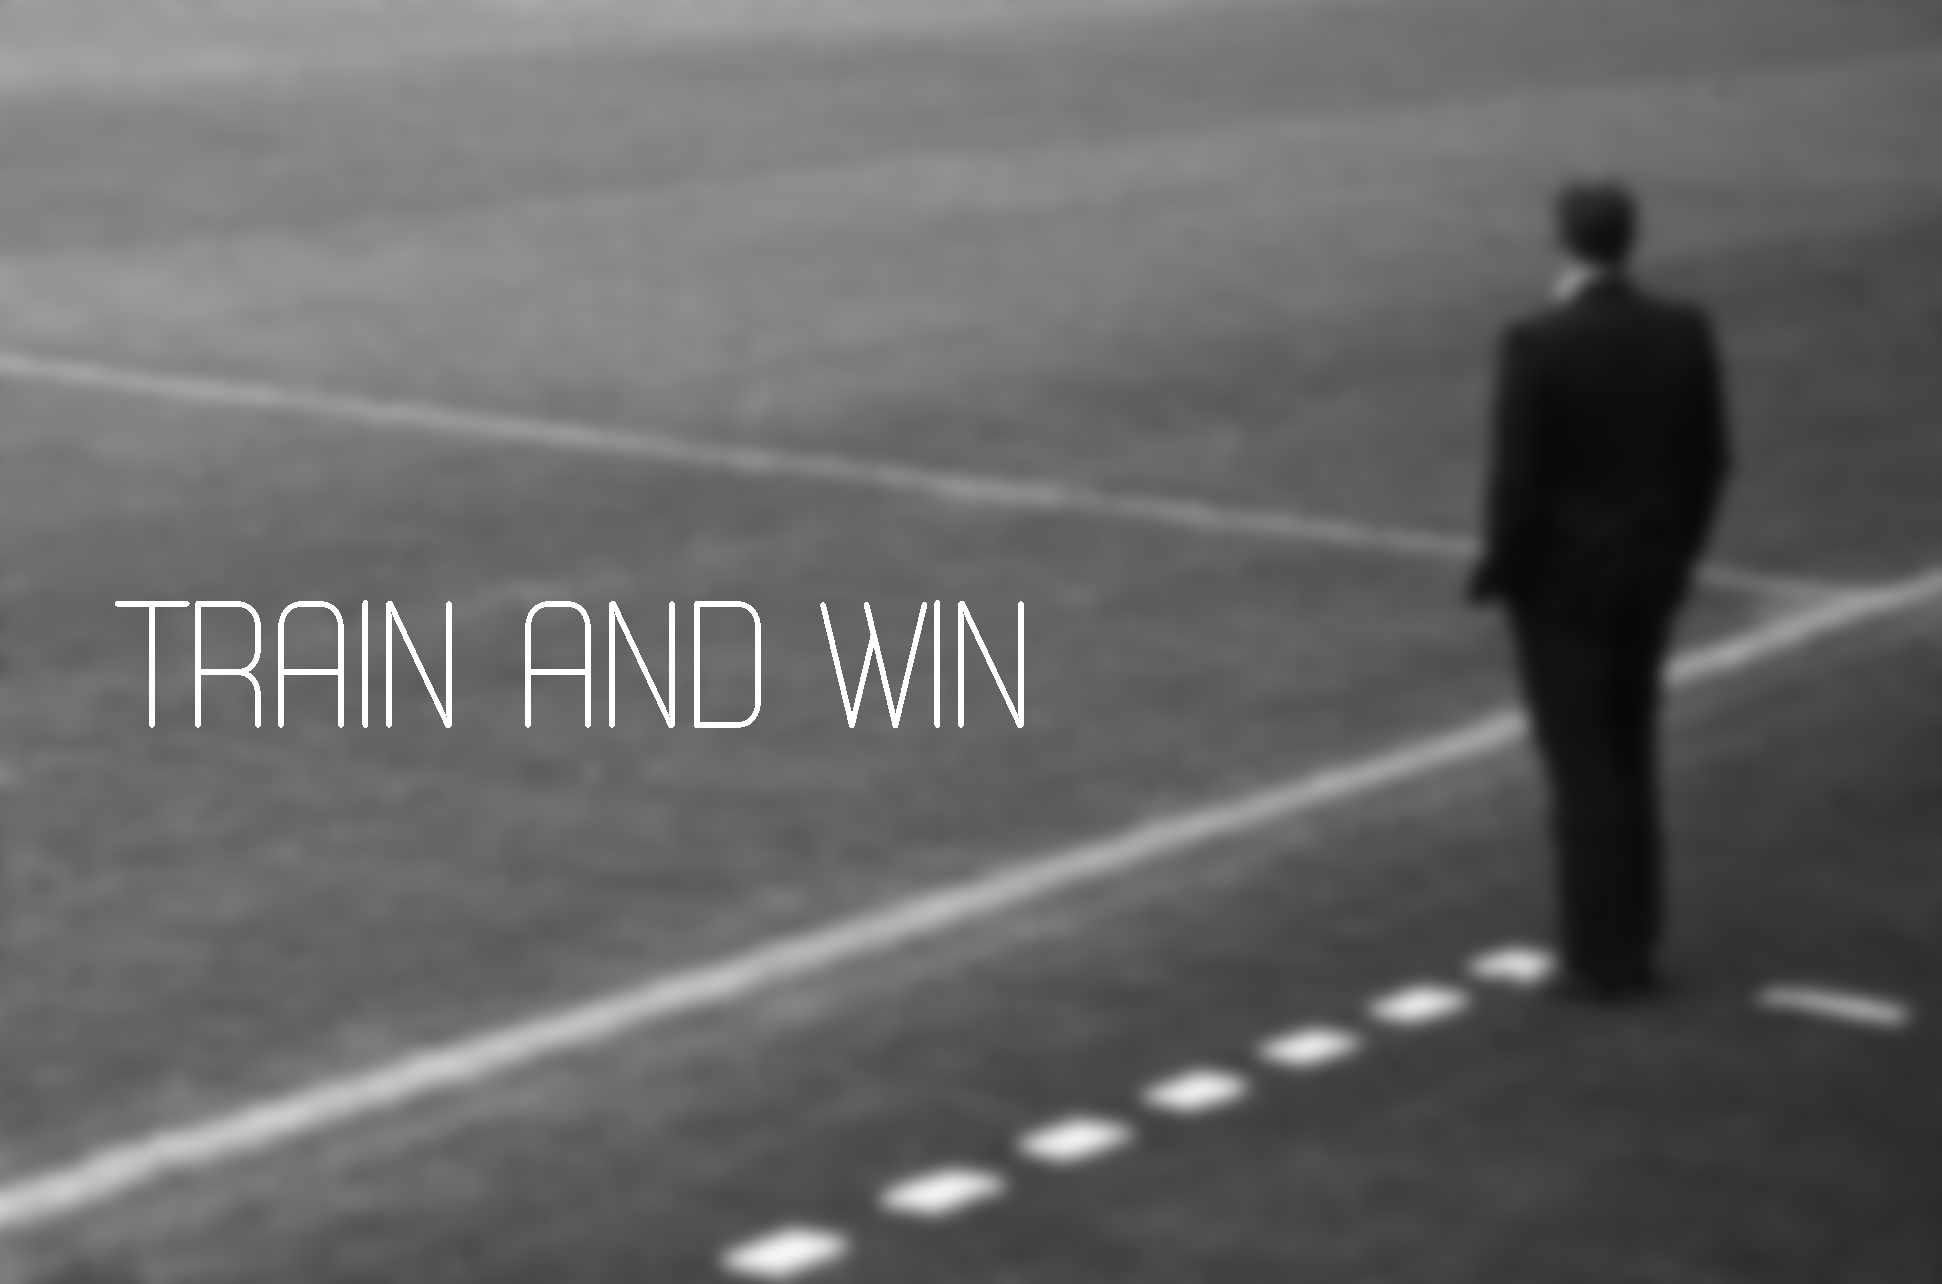 train and win